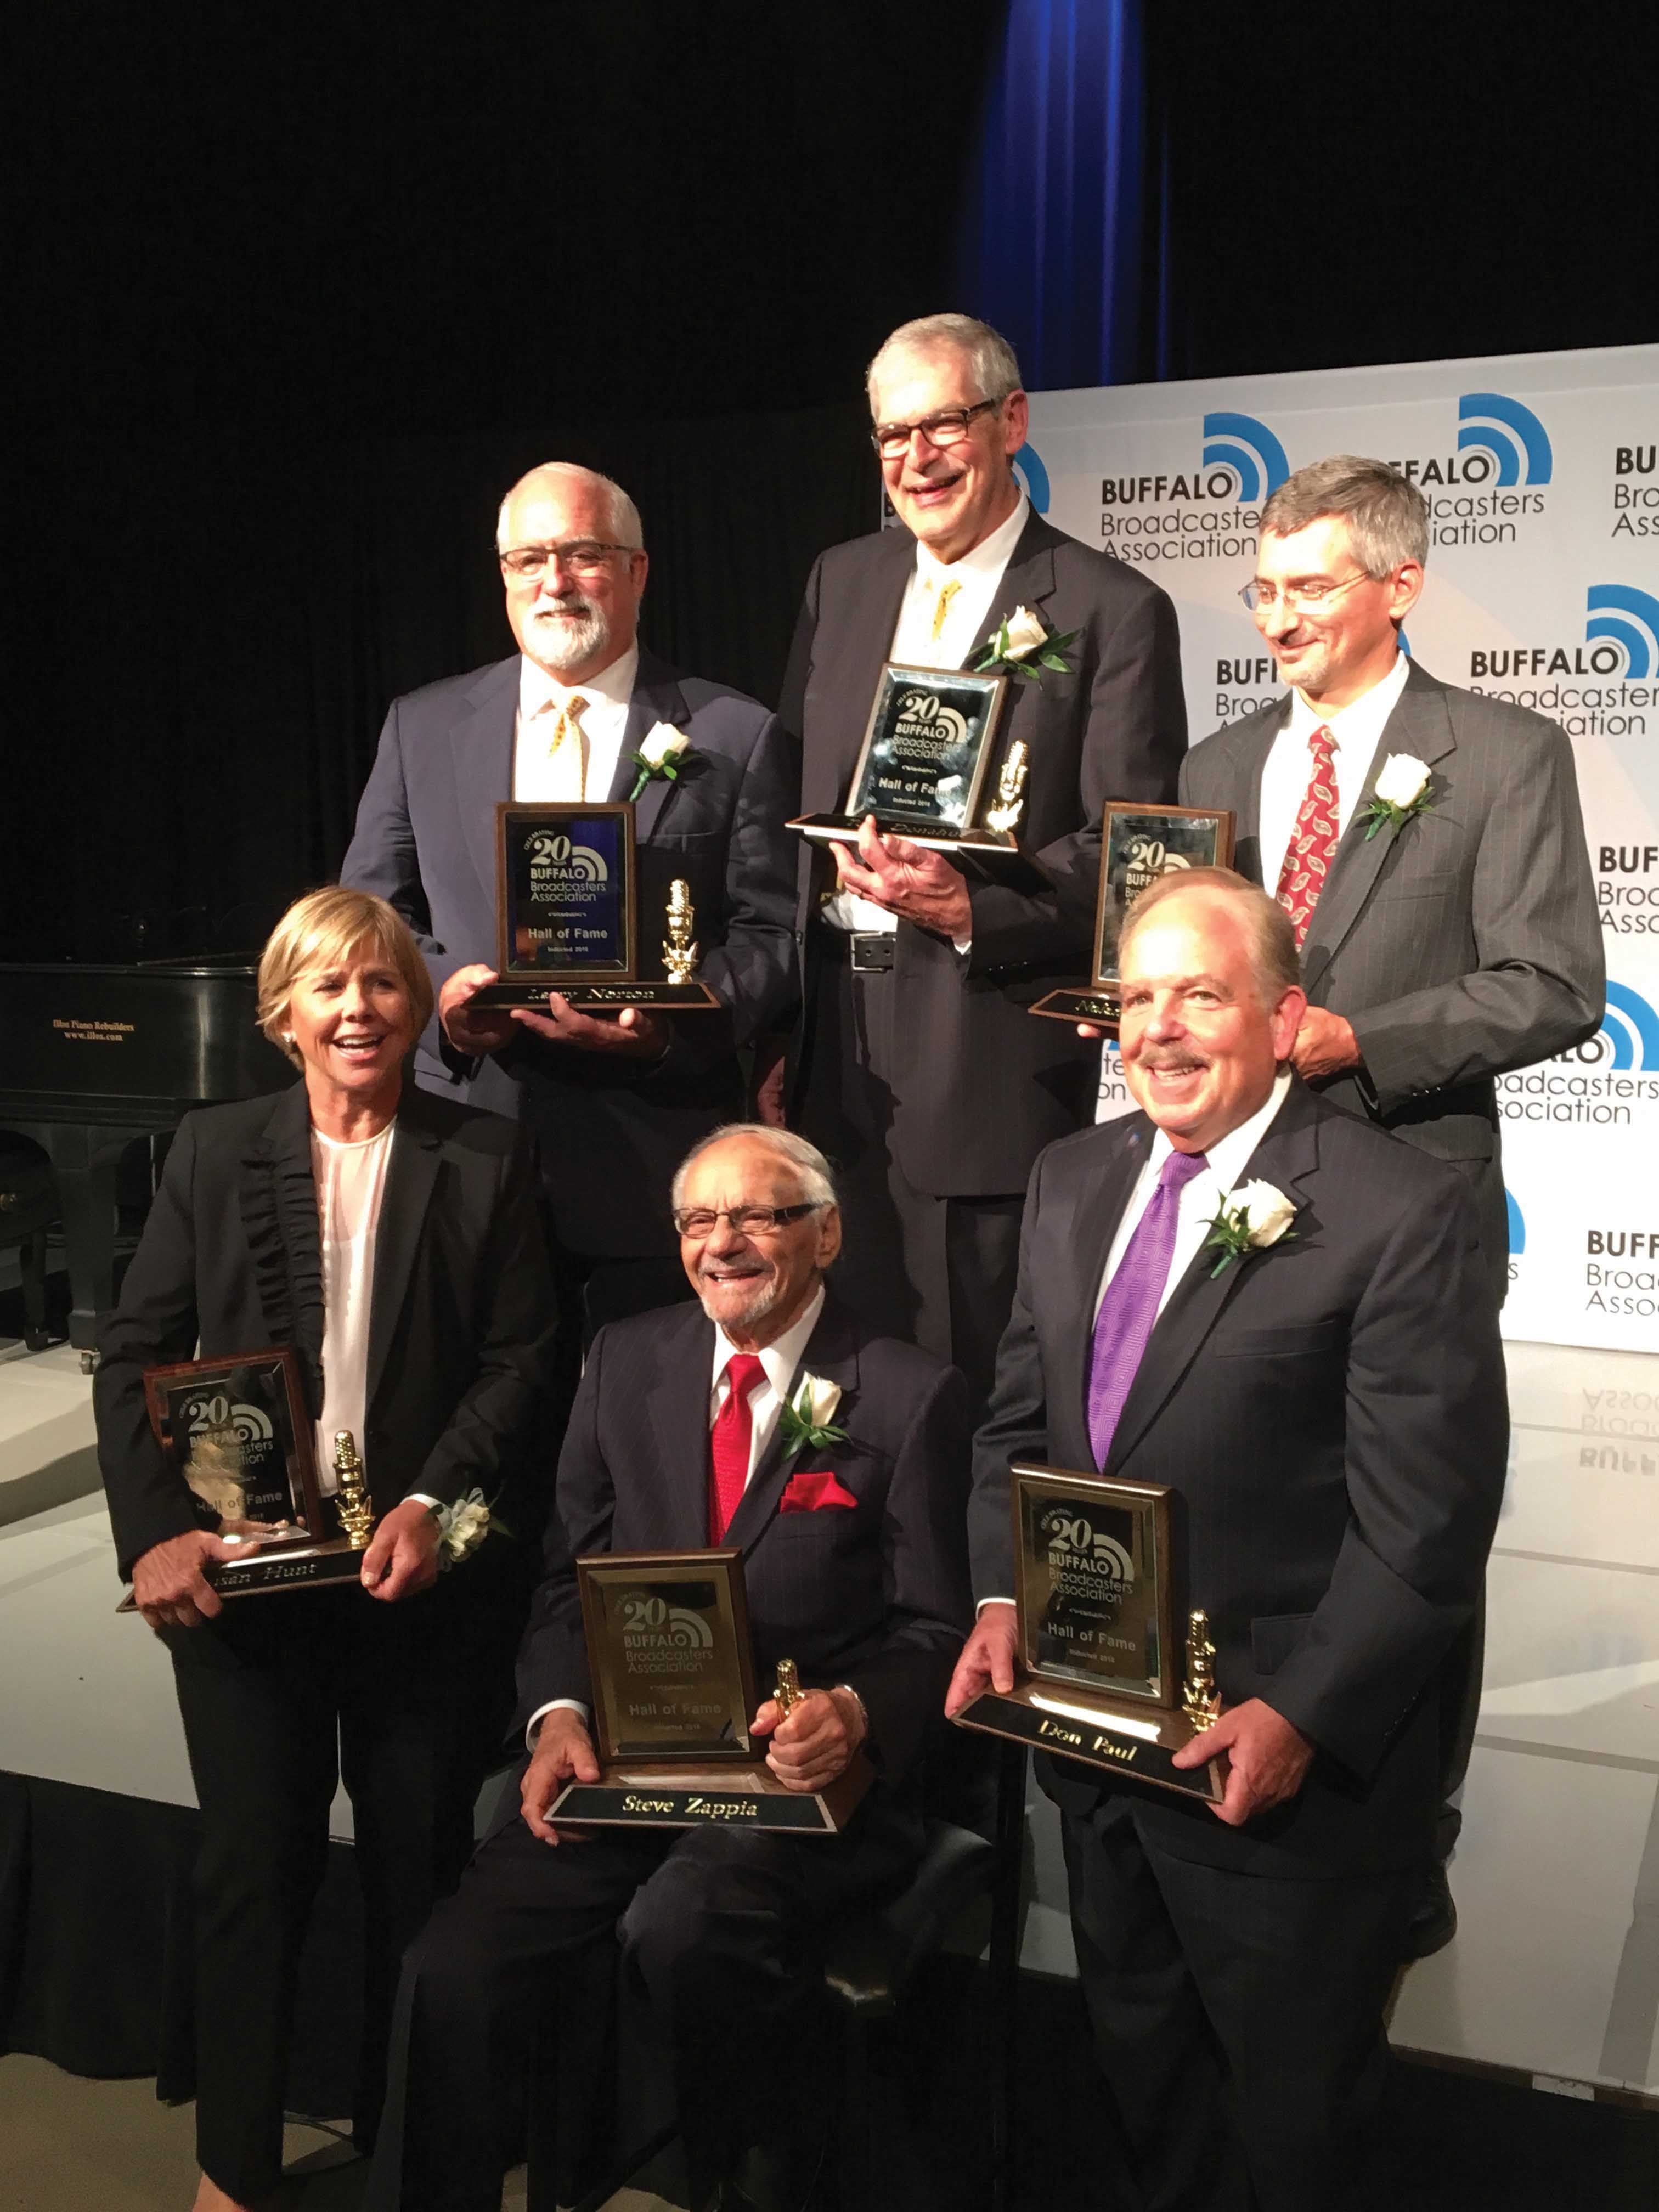 Tom McCray (top center) was inducted into the Association's Hall of Fame Thursday night.